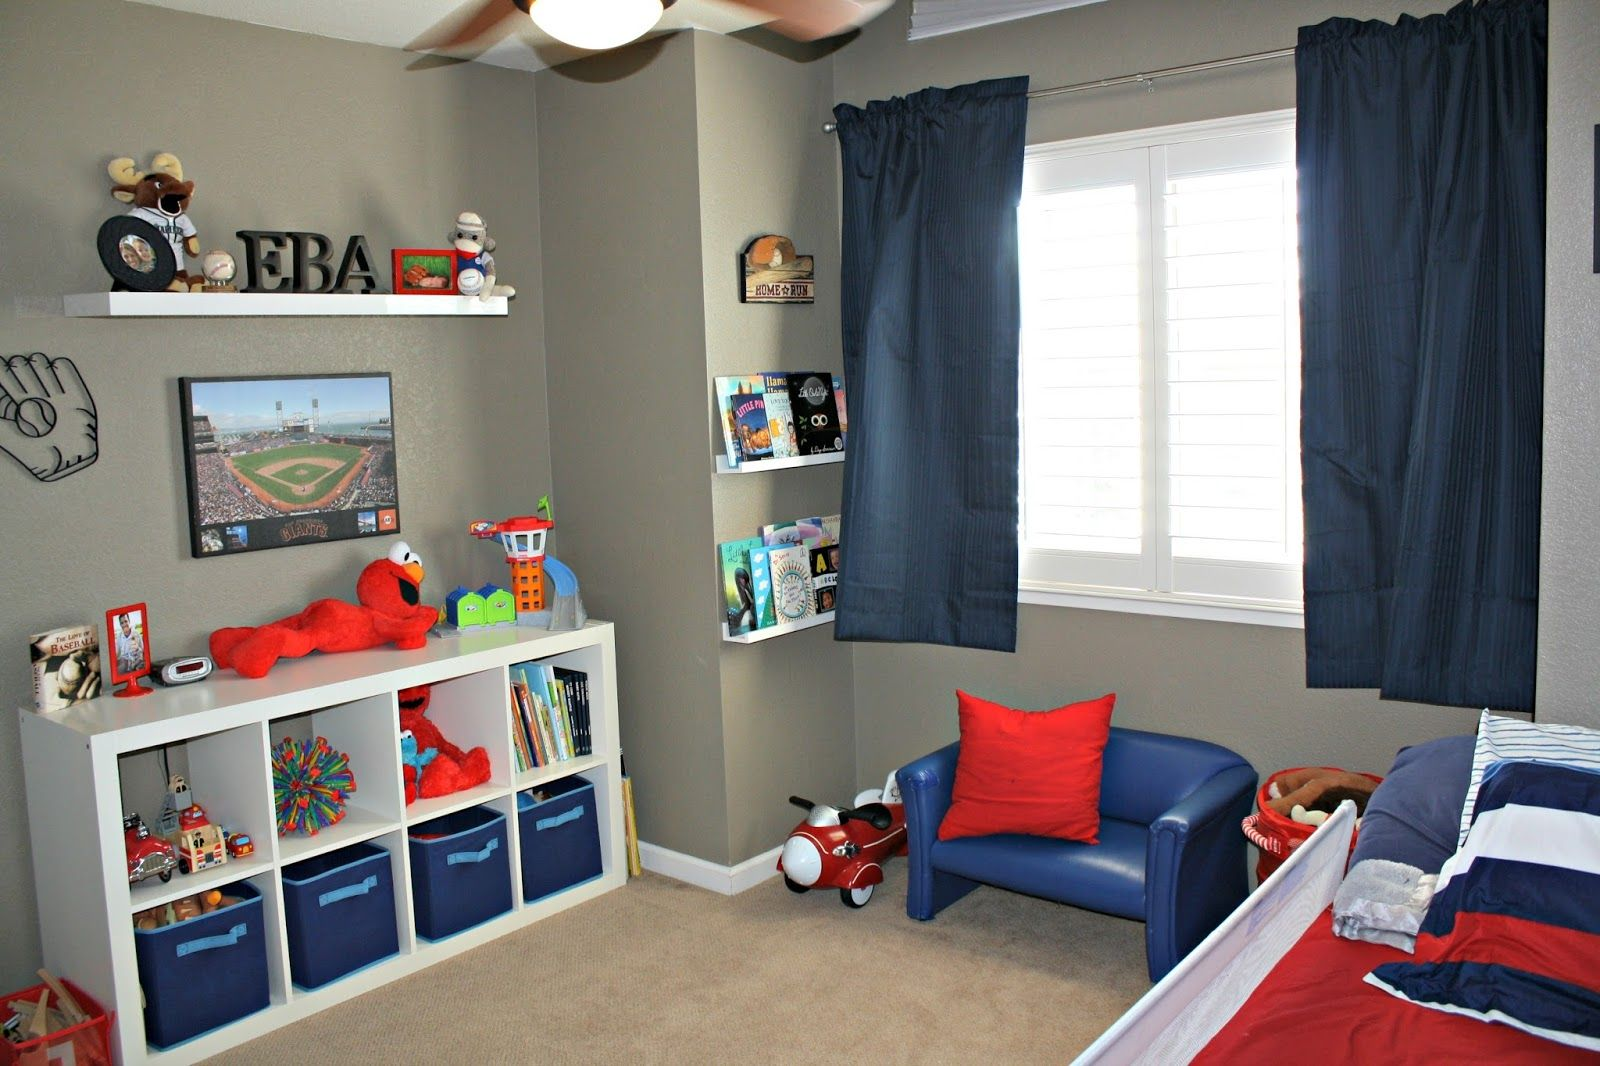 ordinary Boys Room Decoration Ideas Part - 12: decorating ideas modern toddler bedroom